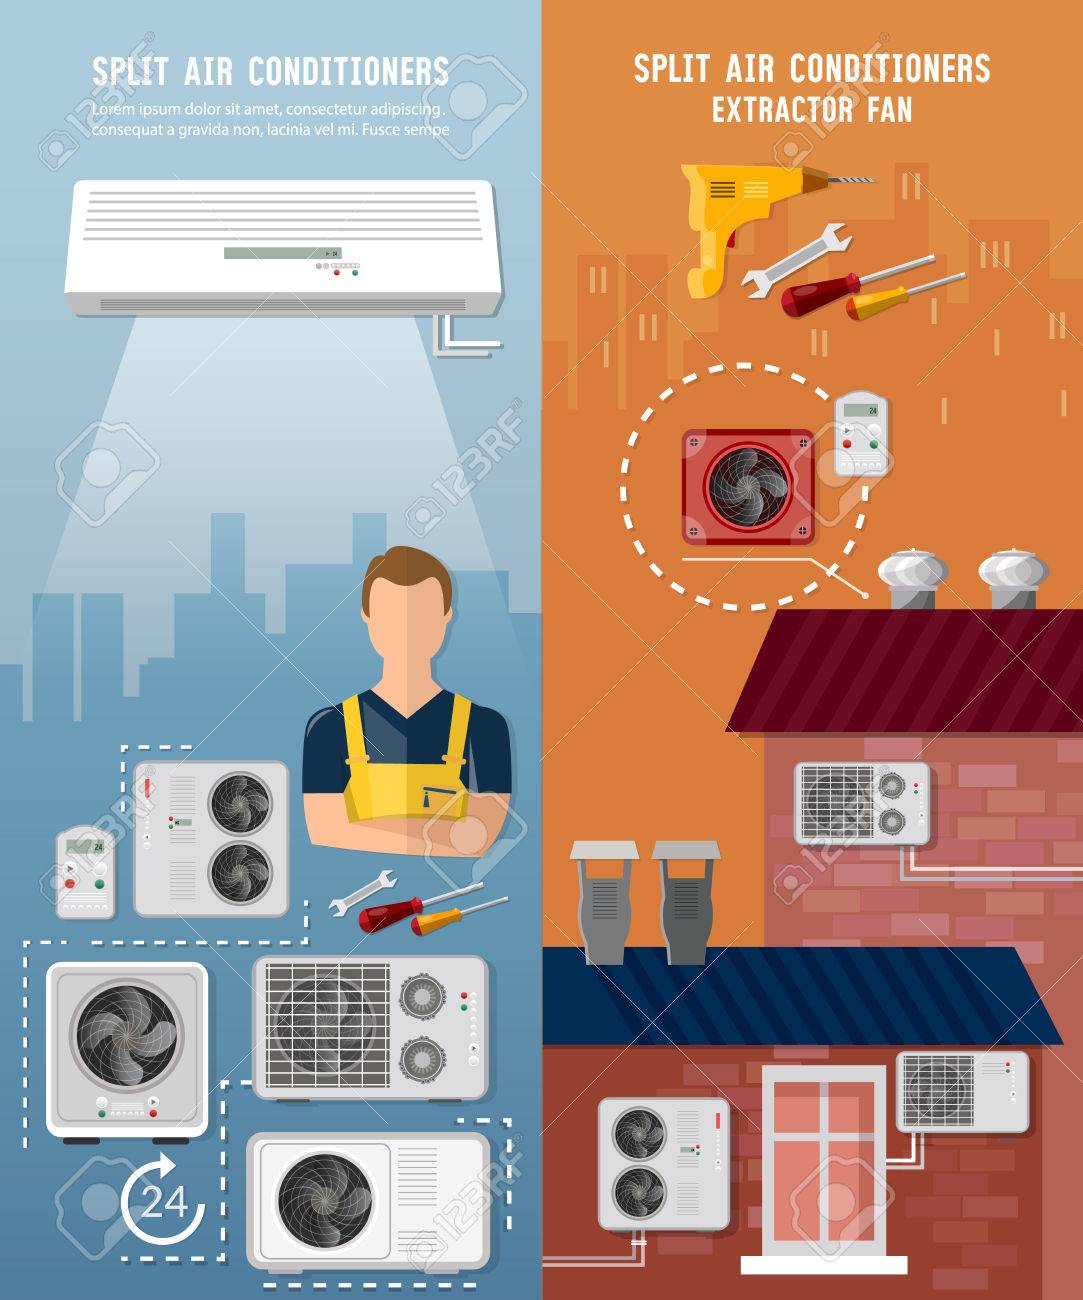 When do I need to repair the ventilation system